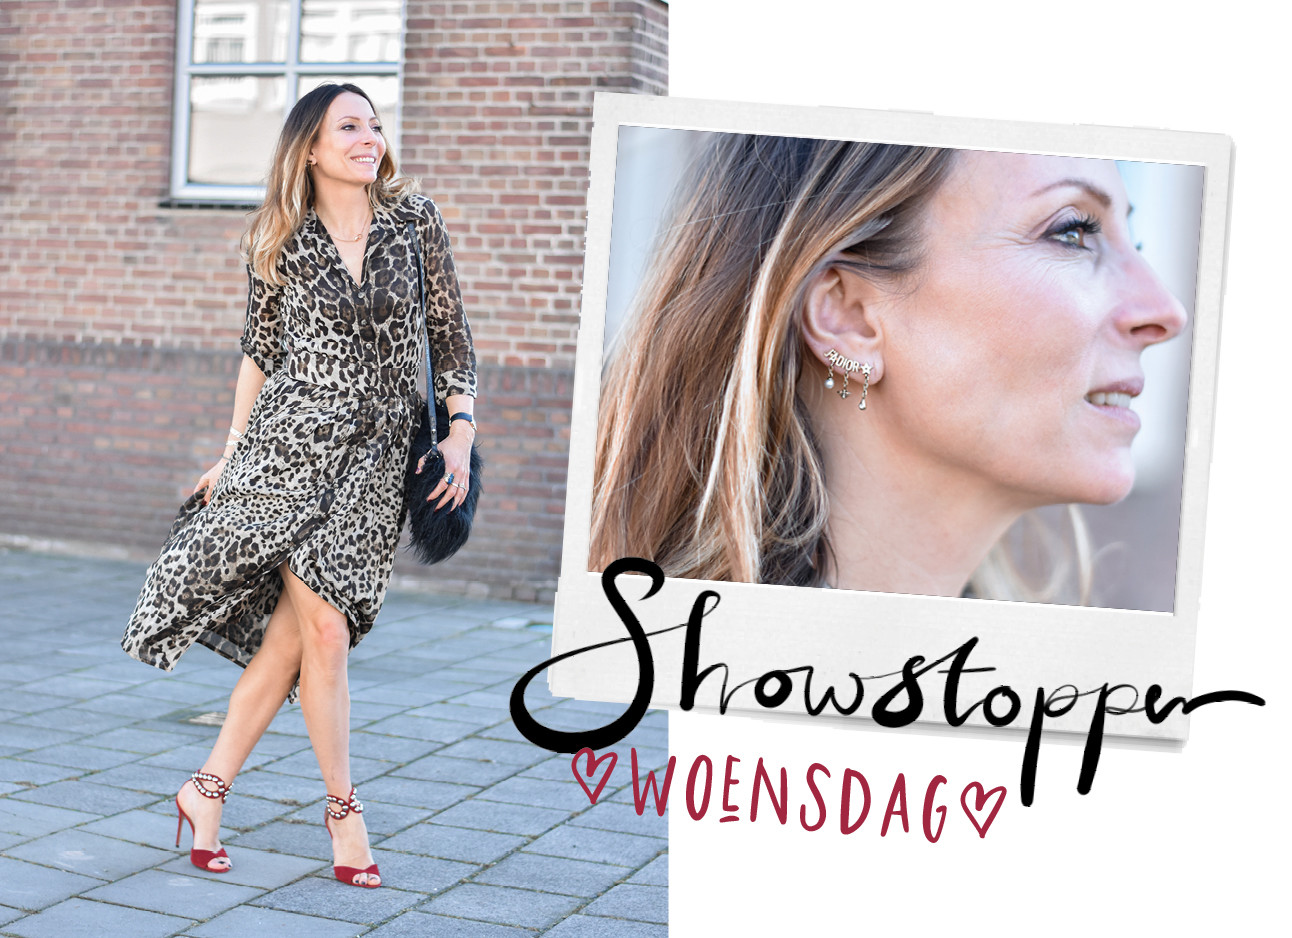 may-britt mobach in summer leopard dress, bordeaux red heels, jewelry, tekst: showstopper woensdag